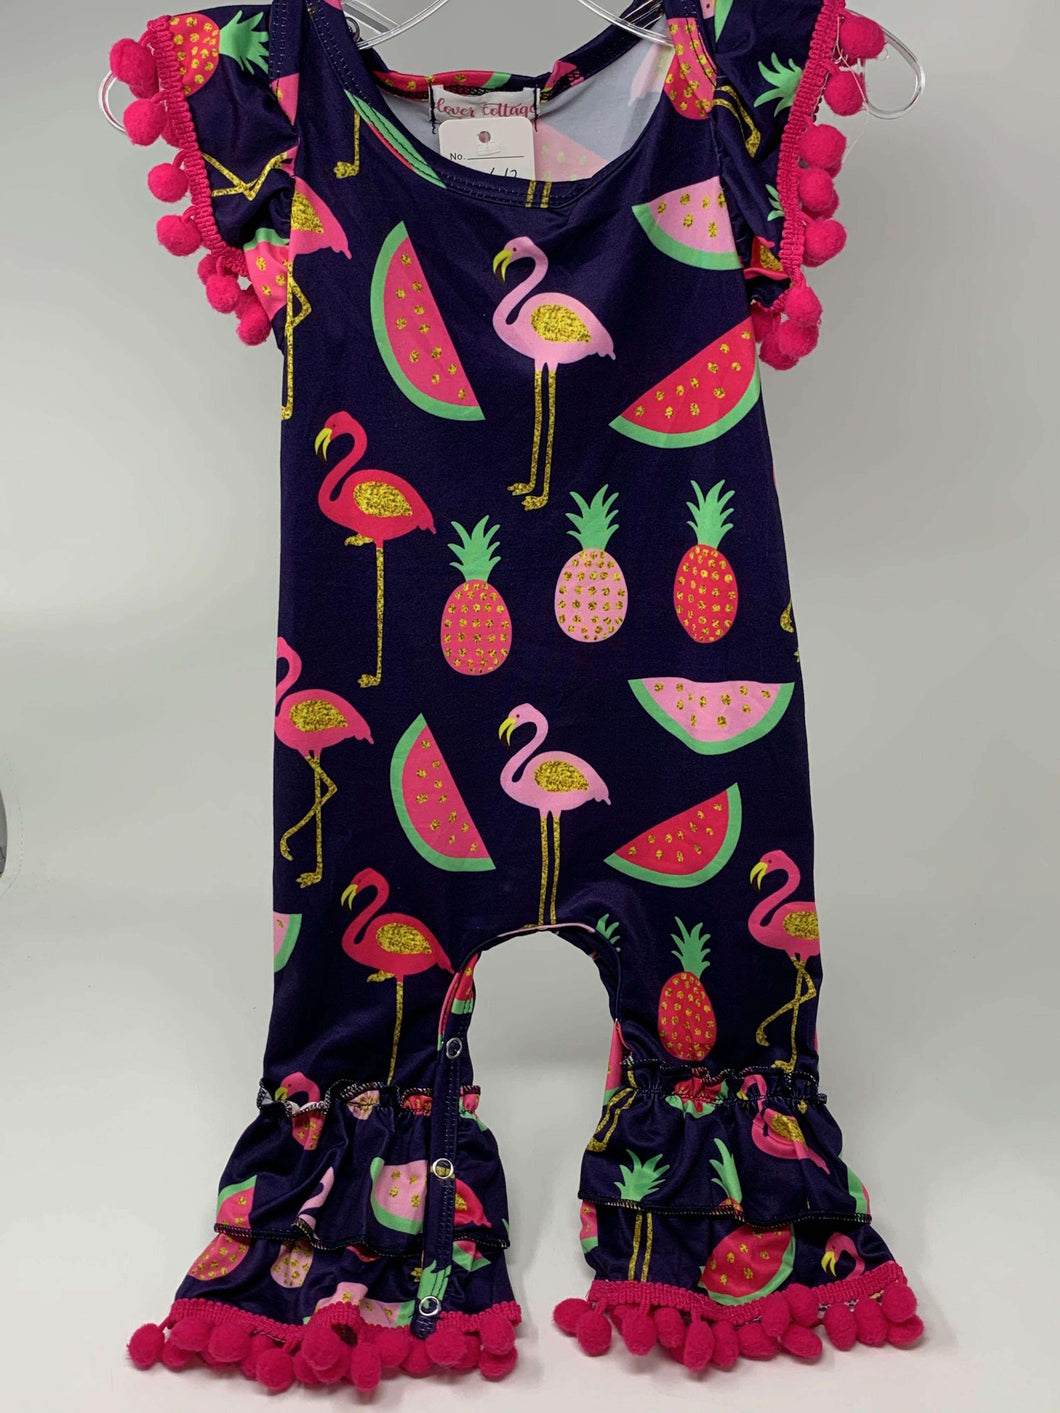 Summertime Fun Flamingo Baby Romper,Kids Clothes